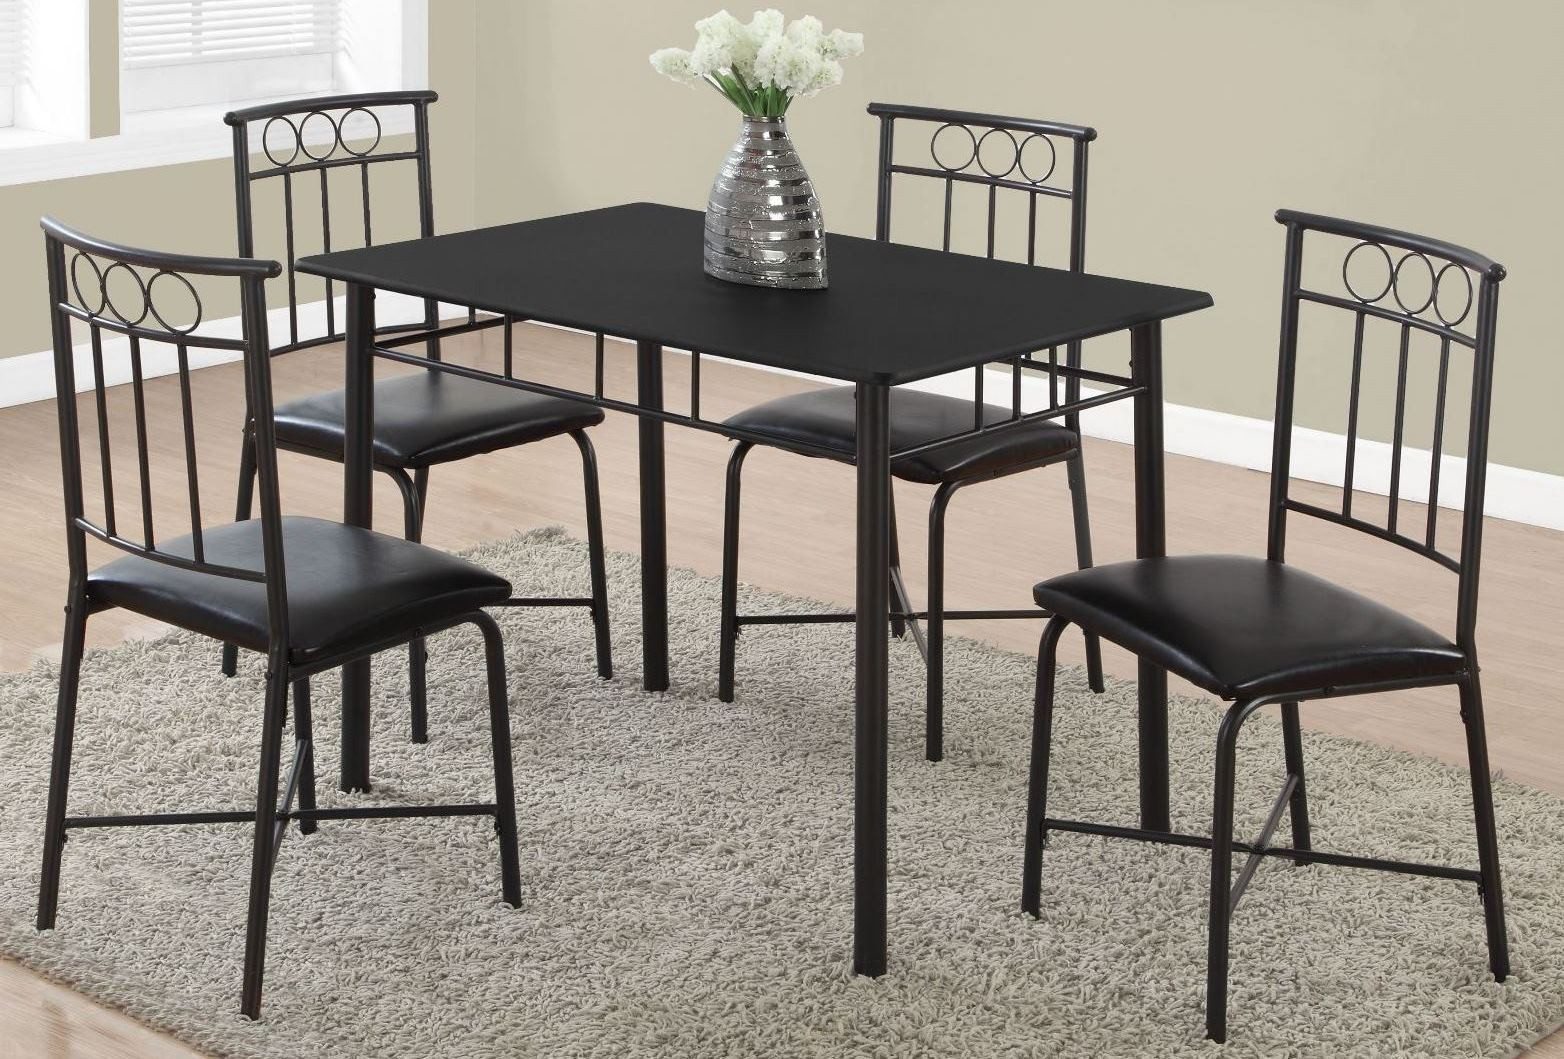 Black metal 5 piece dining room set 1018 monarch for 5 piece dining room sets